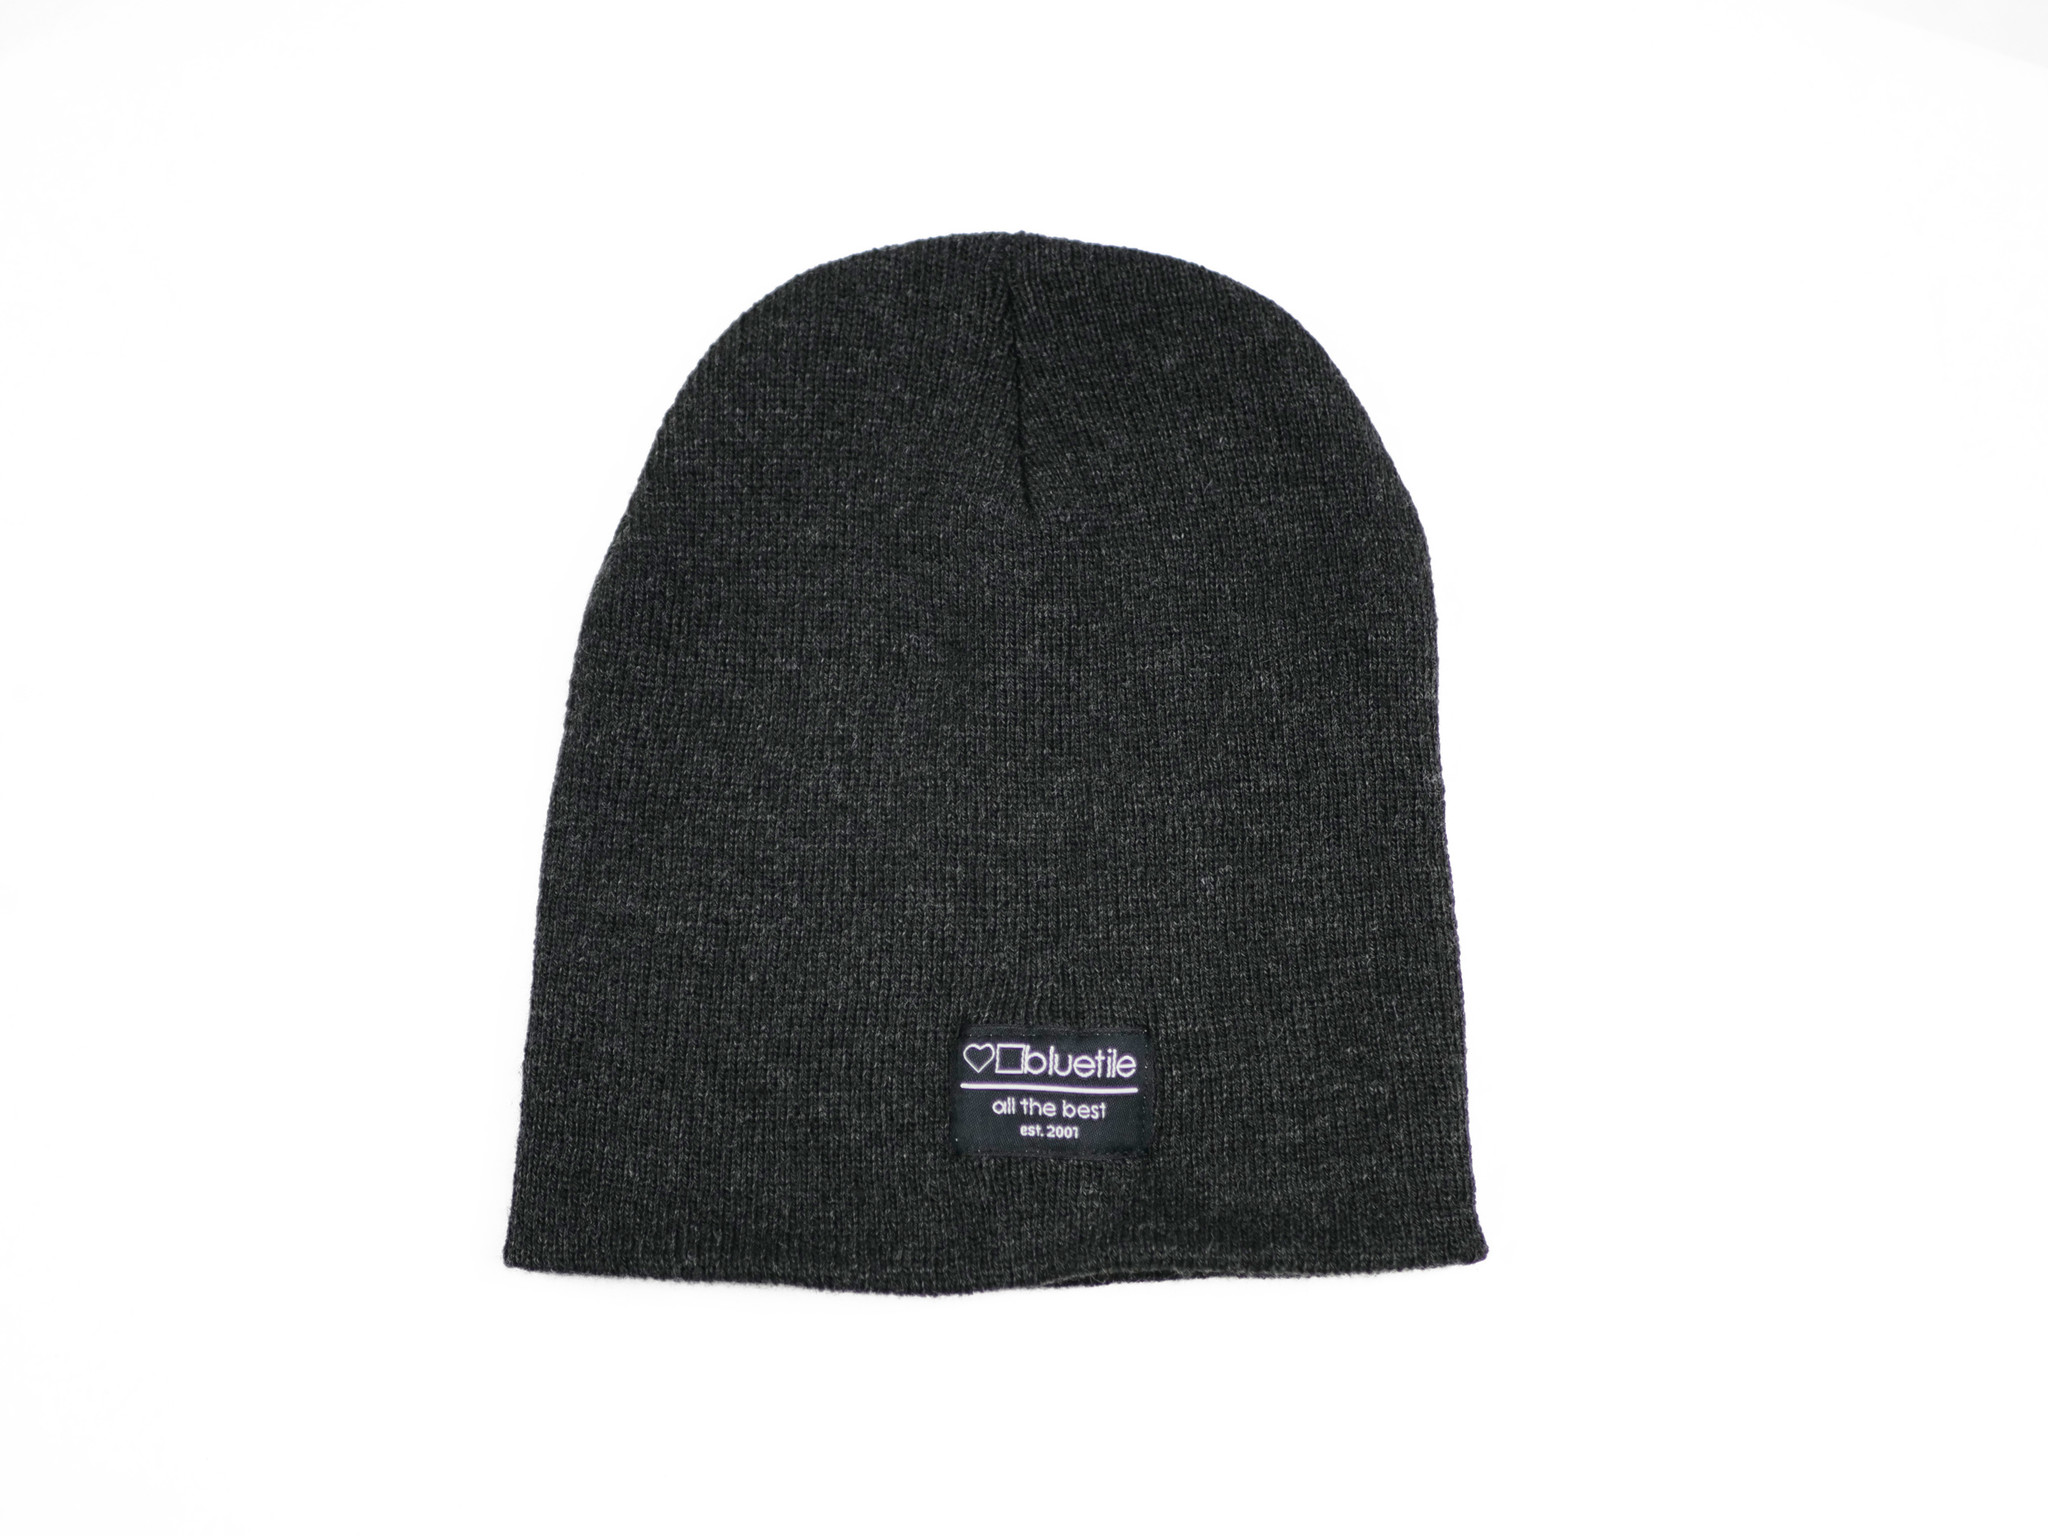 BLUETILE BLUETILE SURPLUS UNCUFF BEANIE DARK GREY